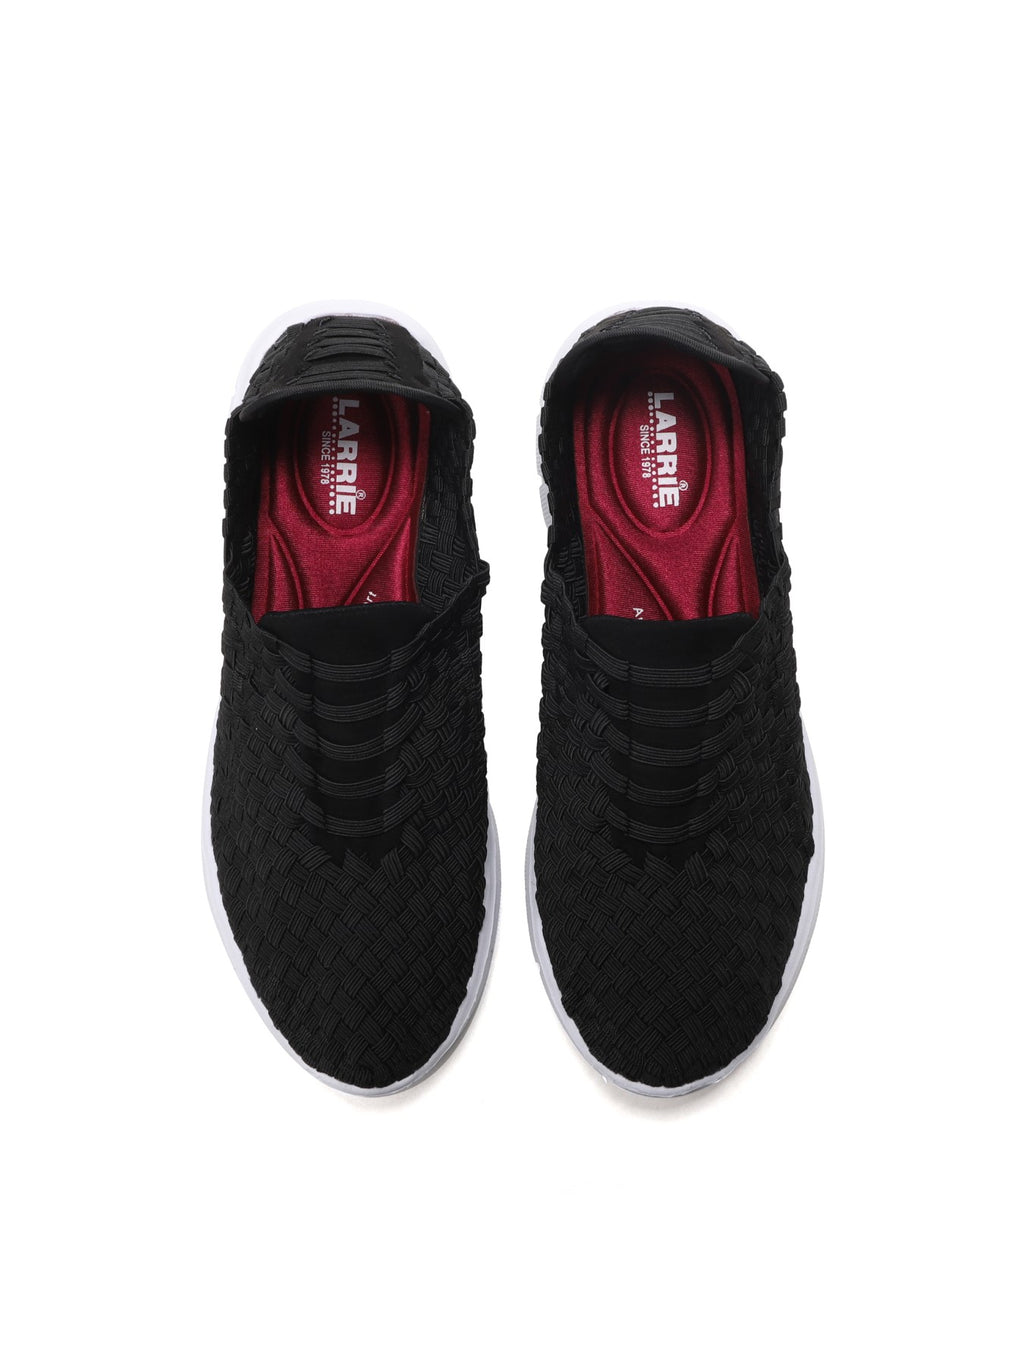 Larrie Black Interlaced Fashionable Sporty Sneakers